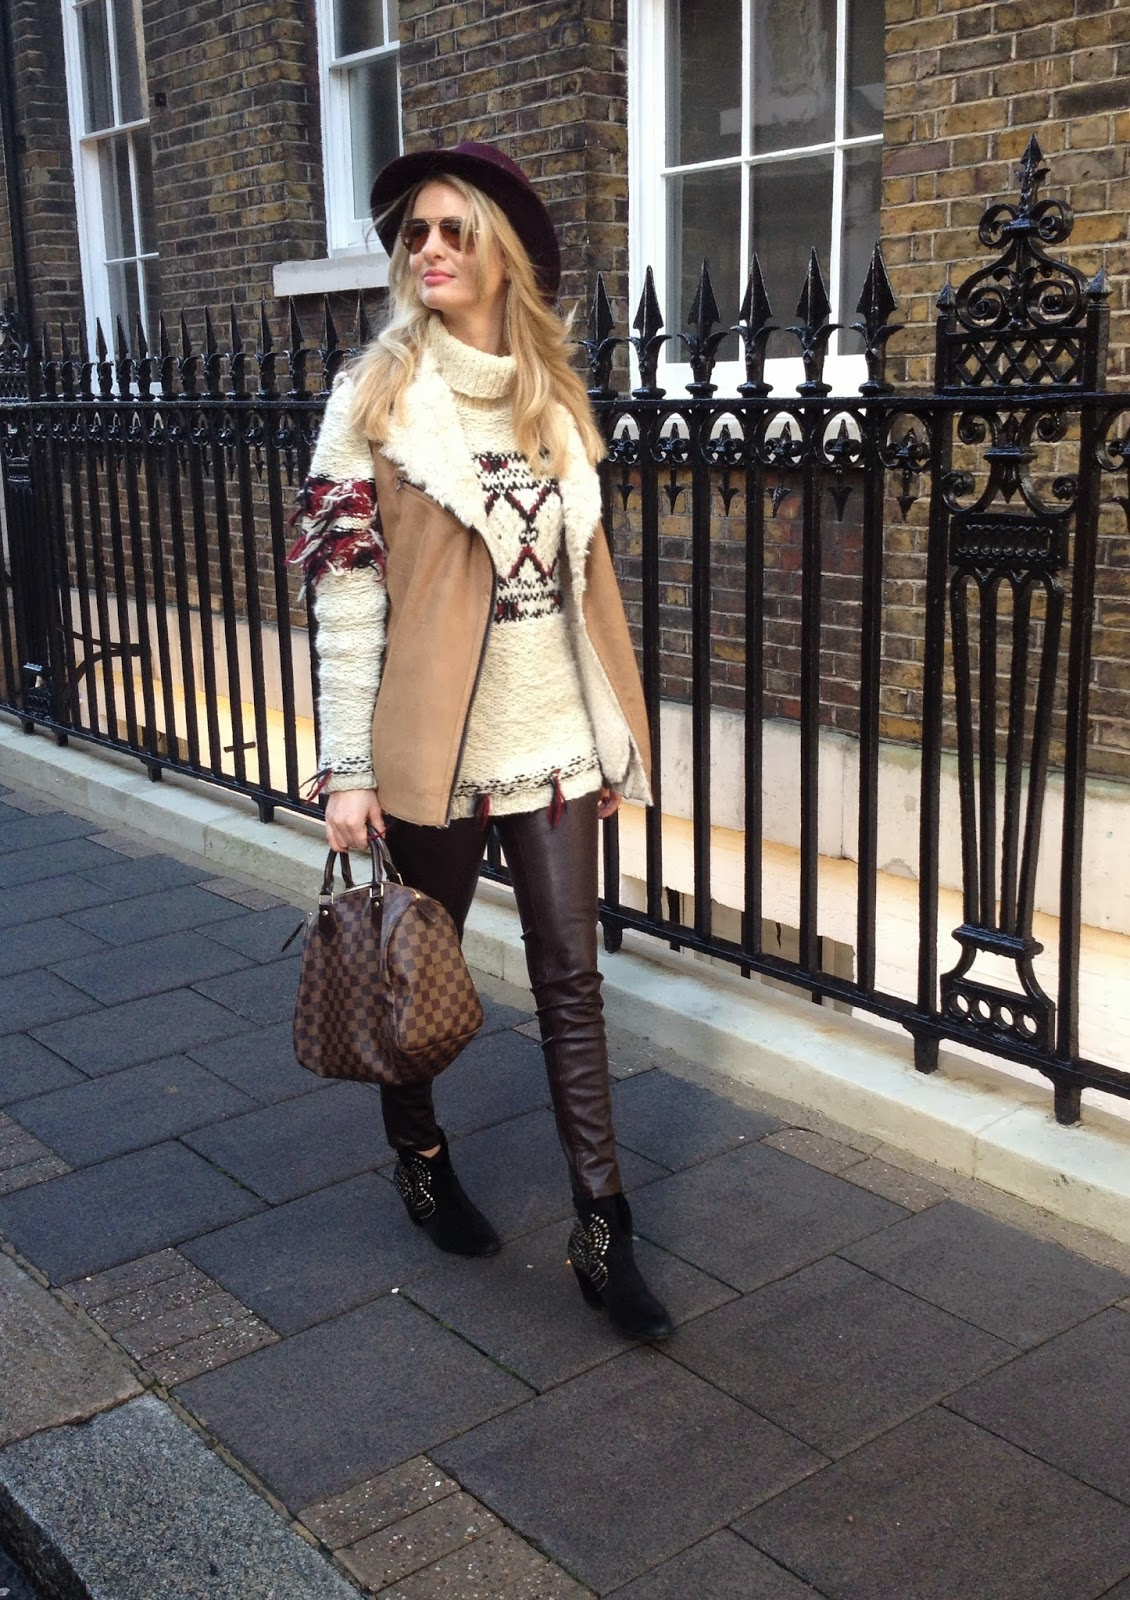 chrissabella, burgundy hat, isabel marant, isabel marant pour hm, isabel marant polo neck, isabel marant turtleneck jumper, leather pants, cropped leather pants, zara cropped leather trousers, zara brown leather trousers, ash boots, lv, louis vuitton, lv speedy, louis vuitton speedy, lfw street style, fashion blogger, fashion blogger lfw street style, boho chi